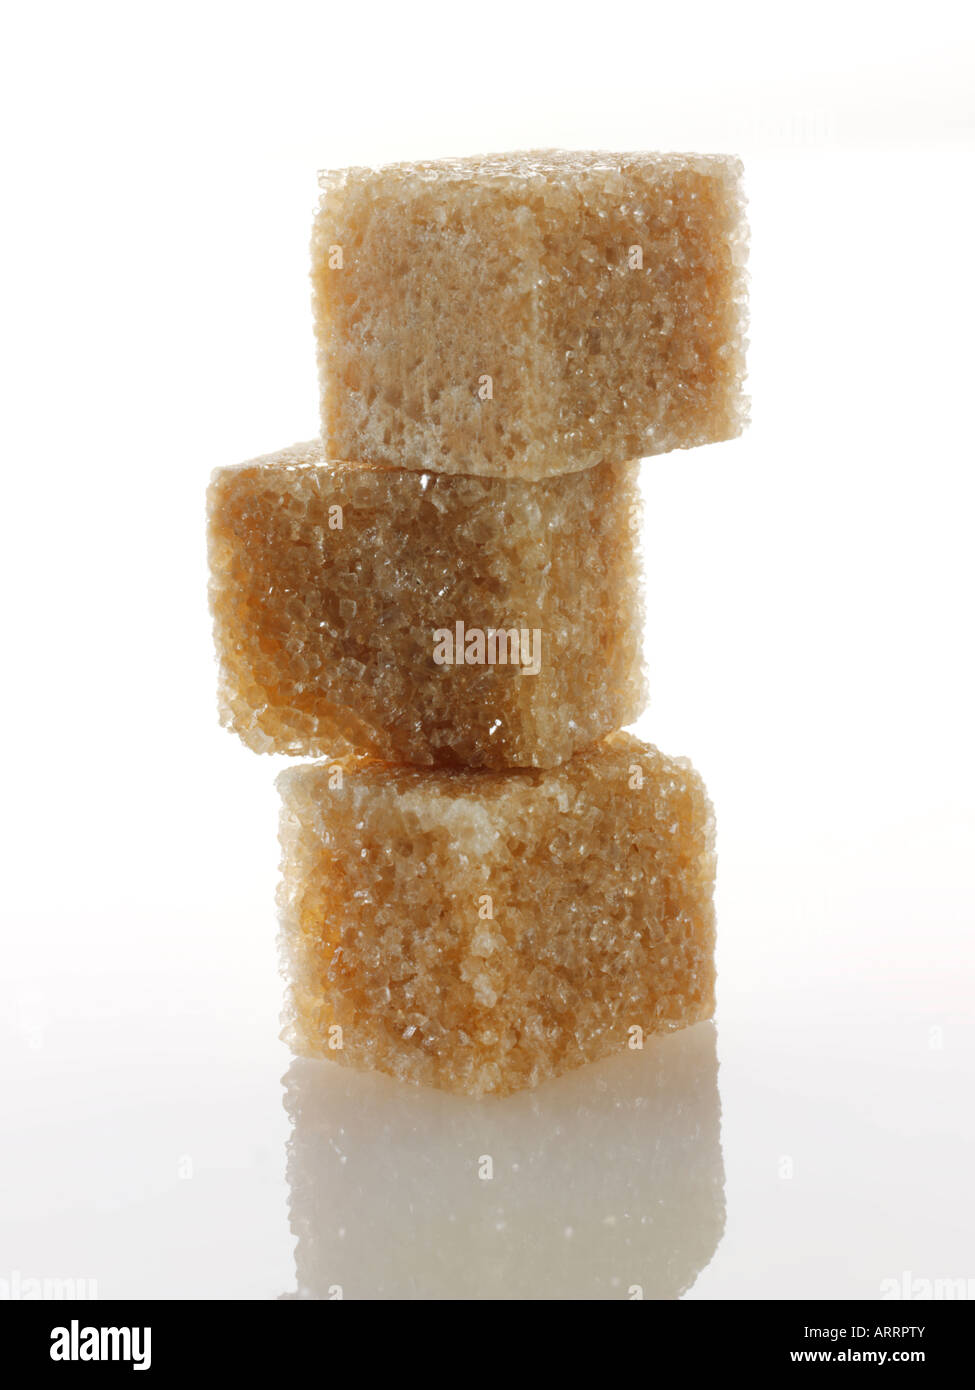 Brown Demerara Sugar cubes - Stock Image